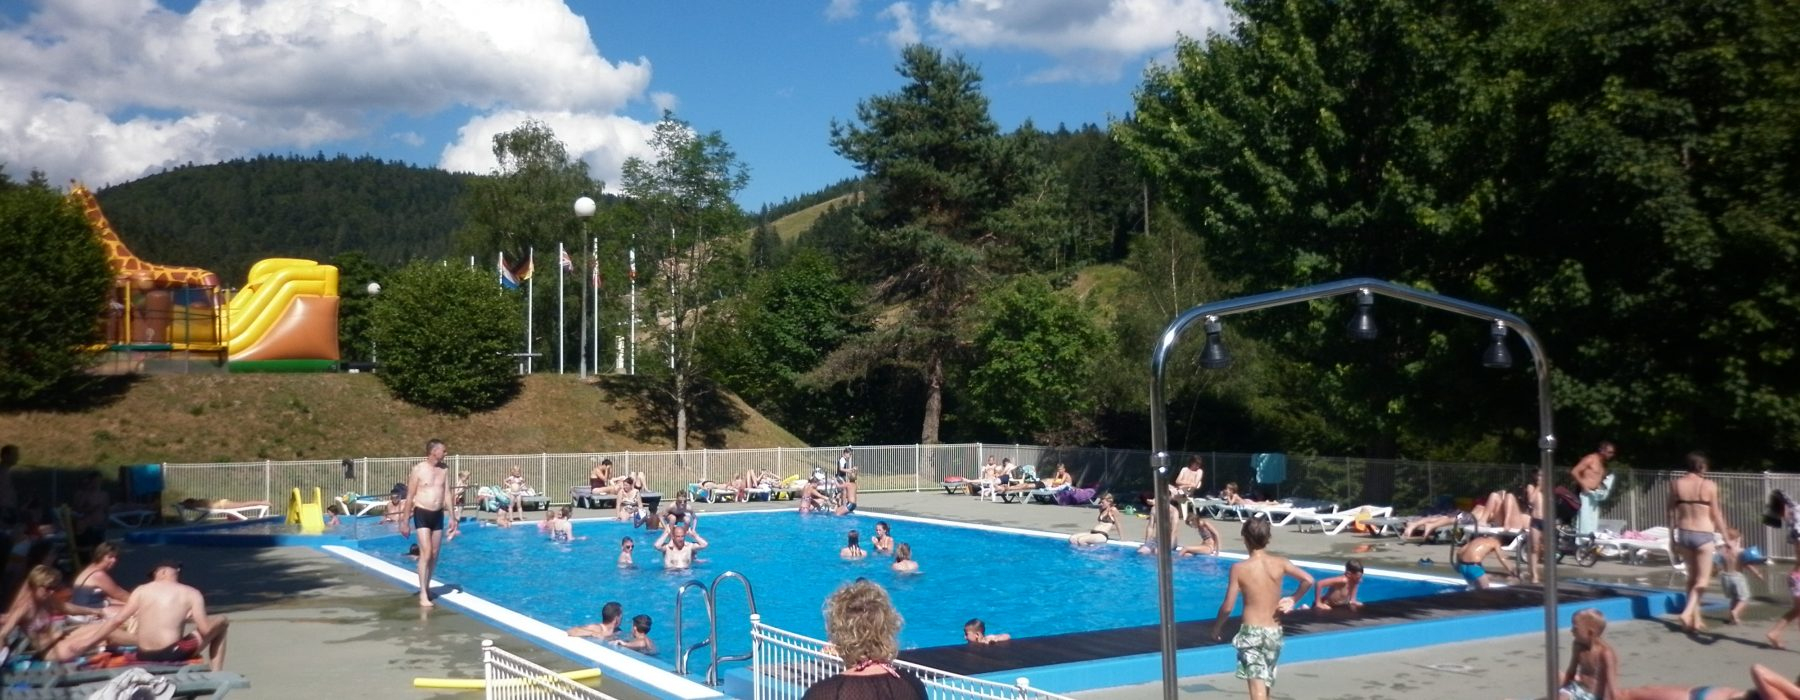 Swimming Pool Area | Camping Belle Hutte à Camping Vosges Piscine